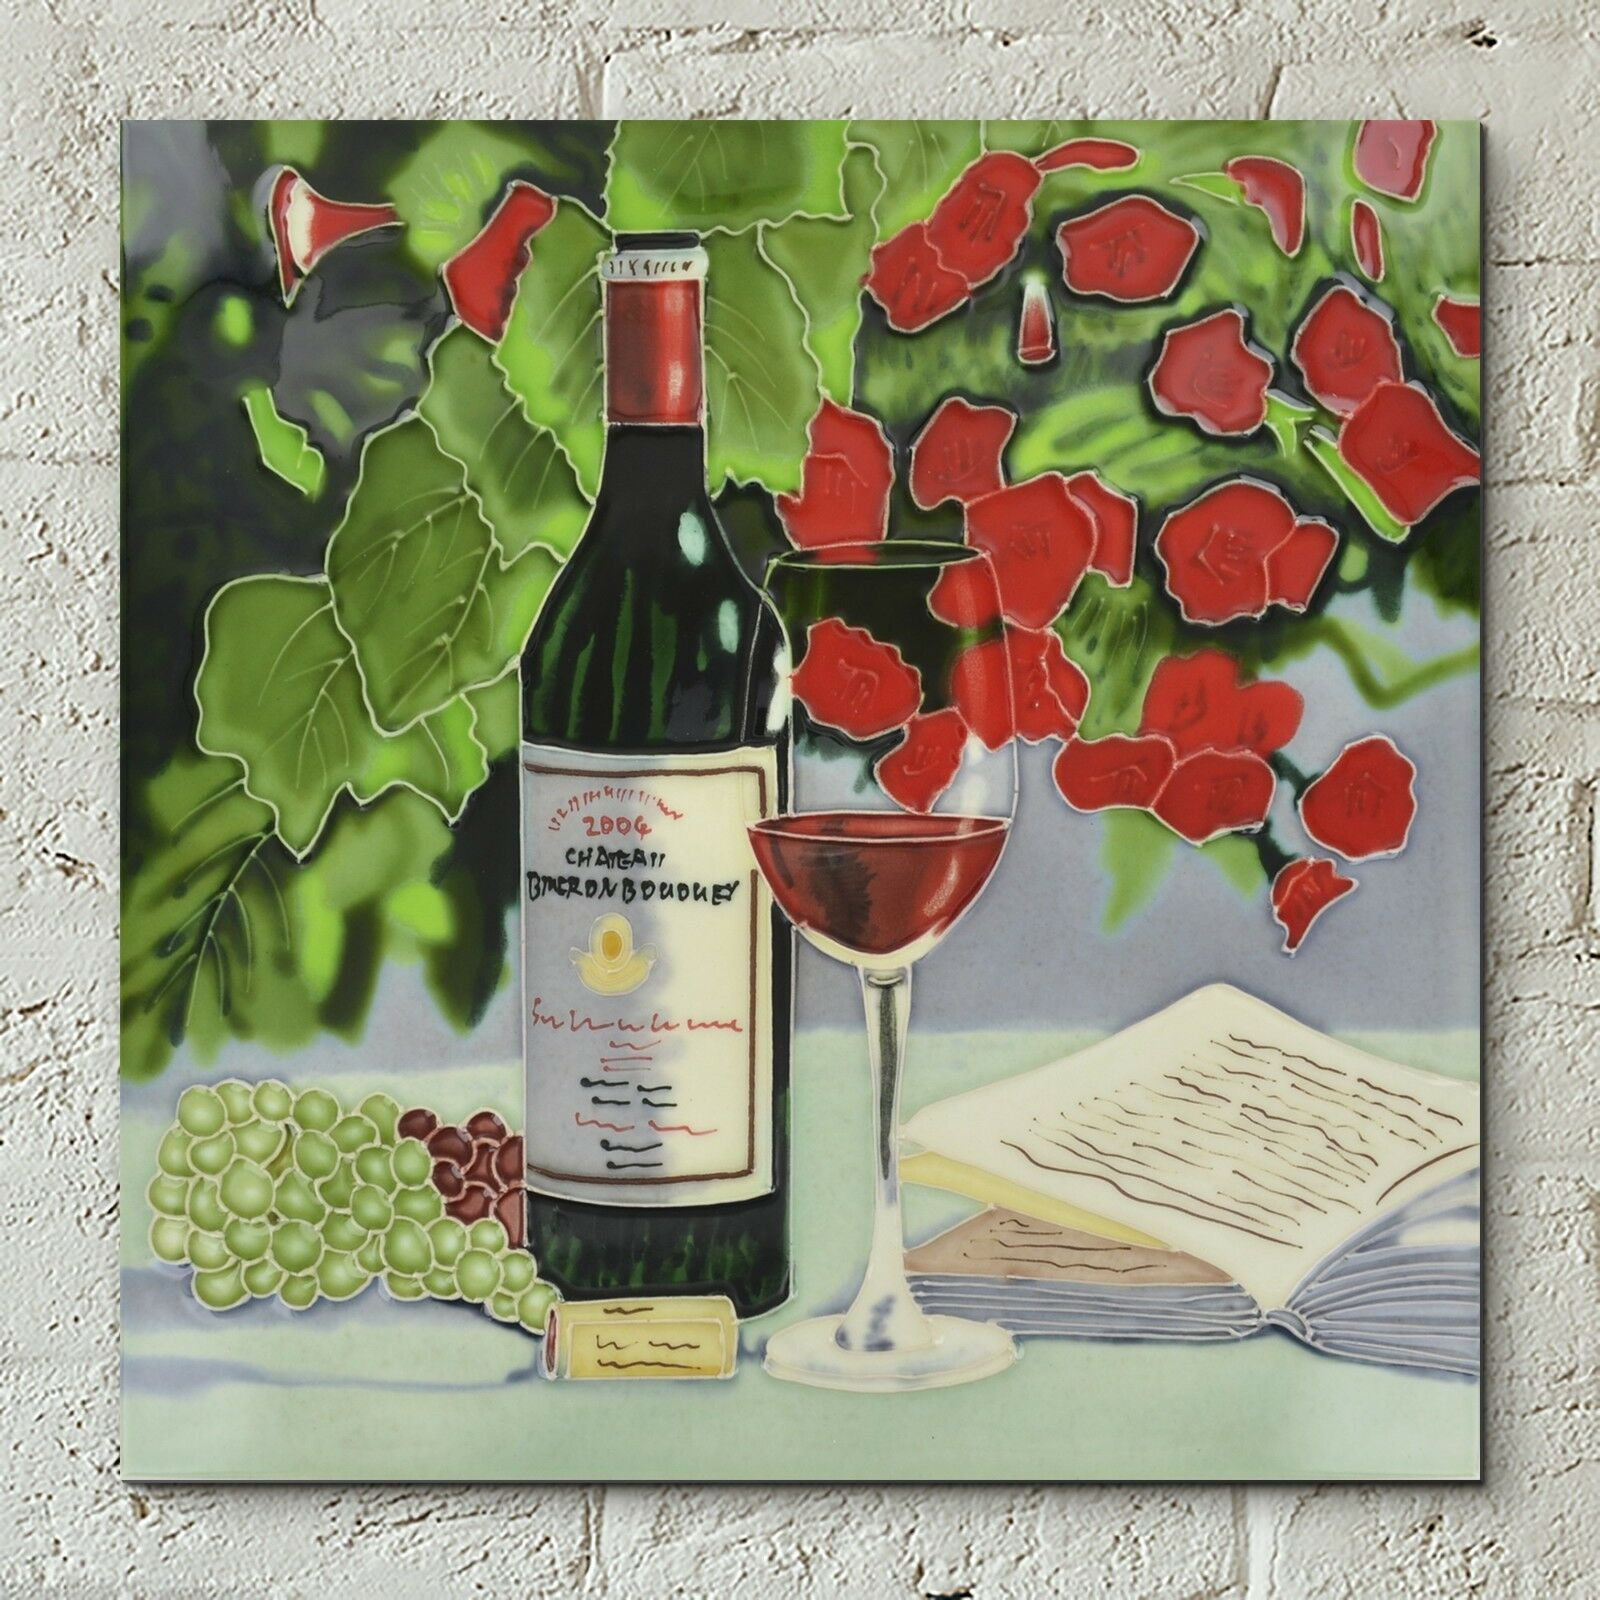 rot Wine Flowers Ceramic Wall Tile Picture Kitchen Plaque Glazed 12x12 05640